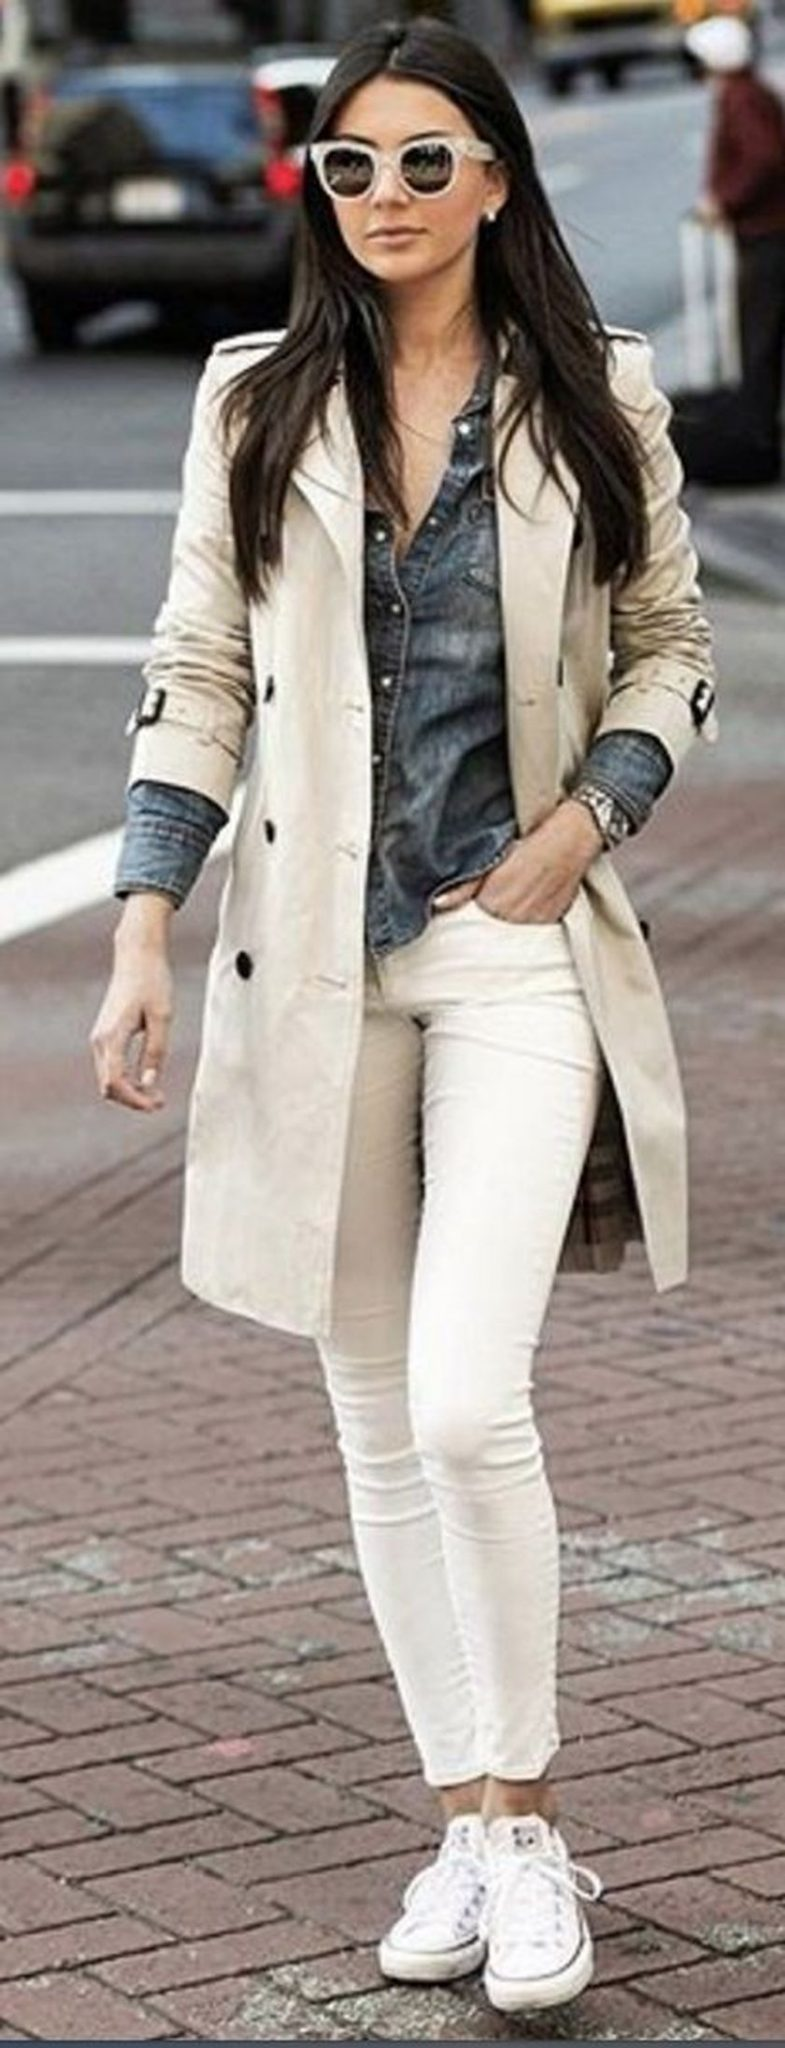 How to wear white sneaker for spring outfits 44